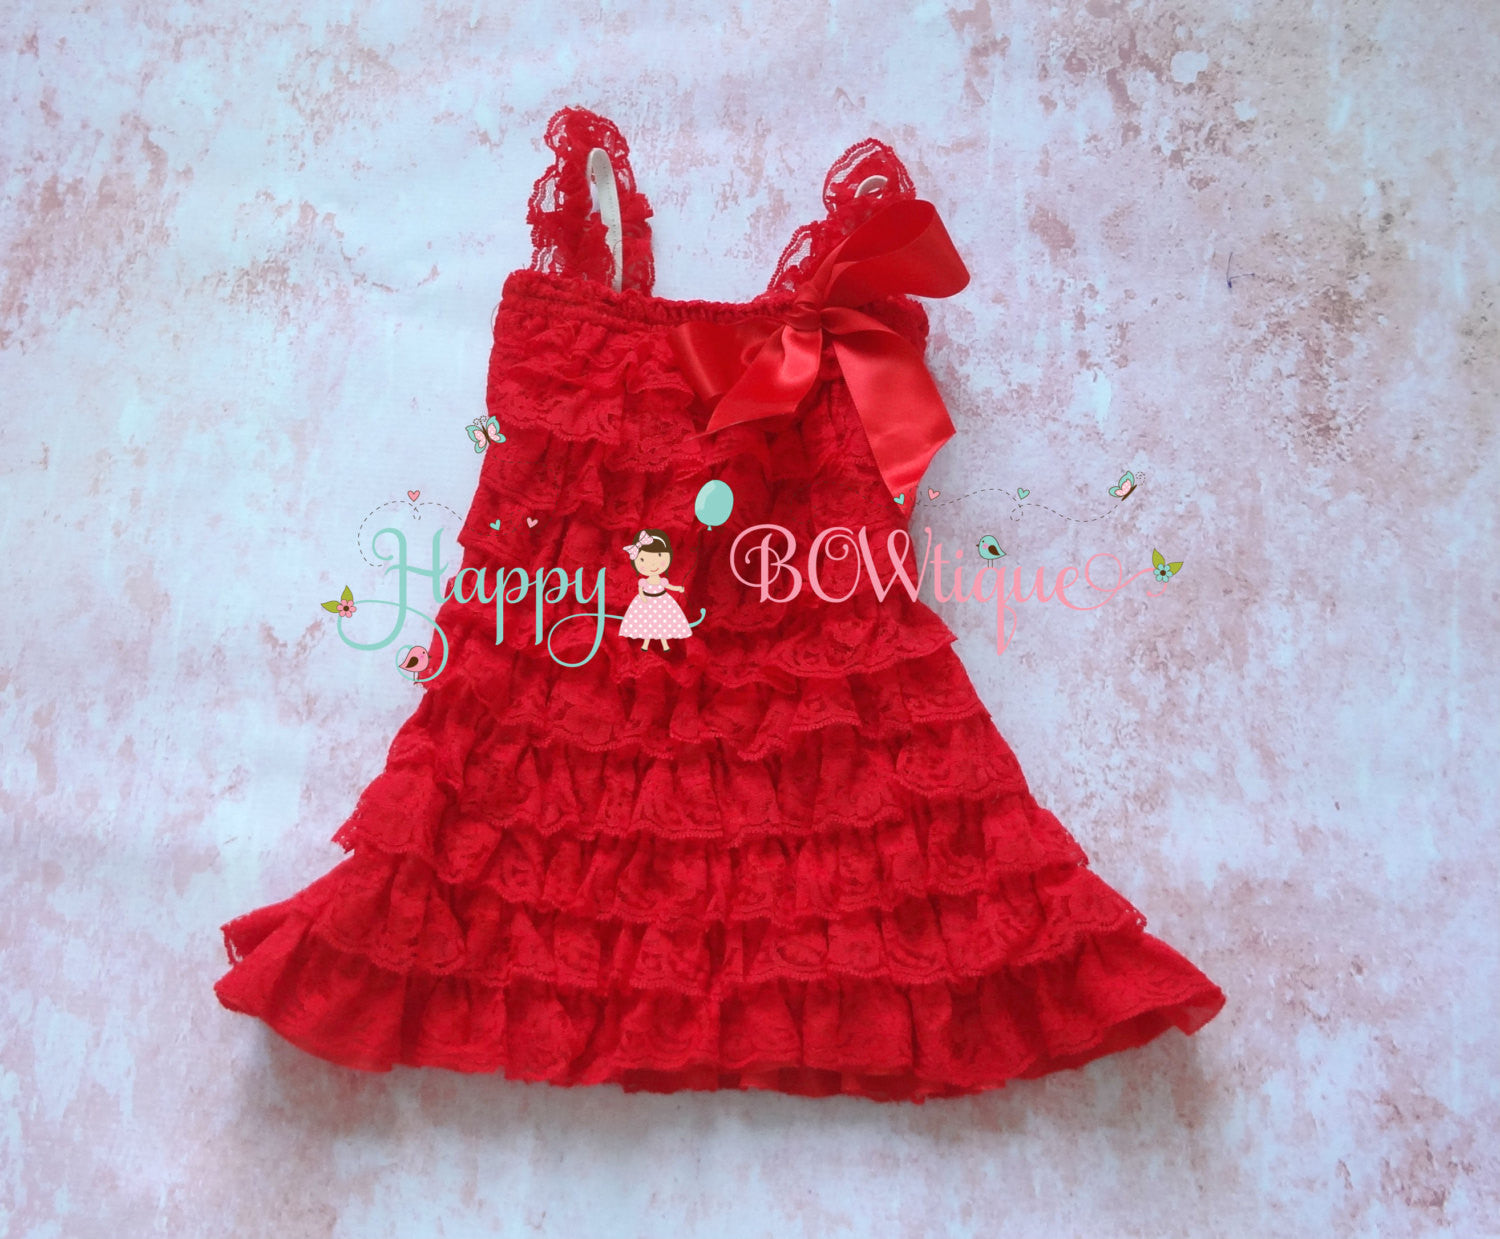 Girl Red Heart Valentine Lace Dress / Girl Valentine Dress - Happy BOWtique - children's clothing, Baby Girl clothing